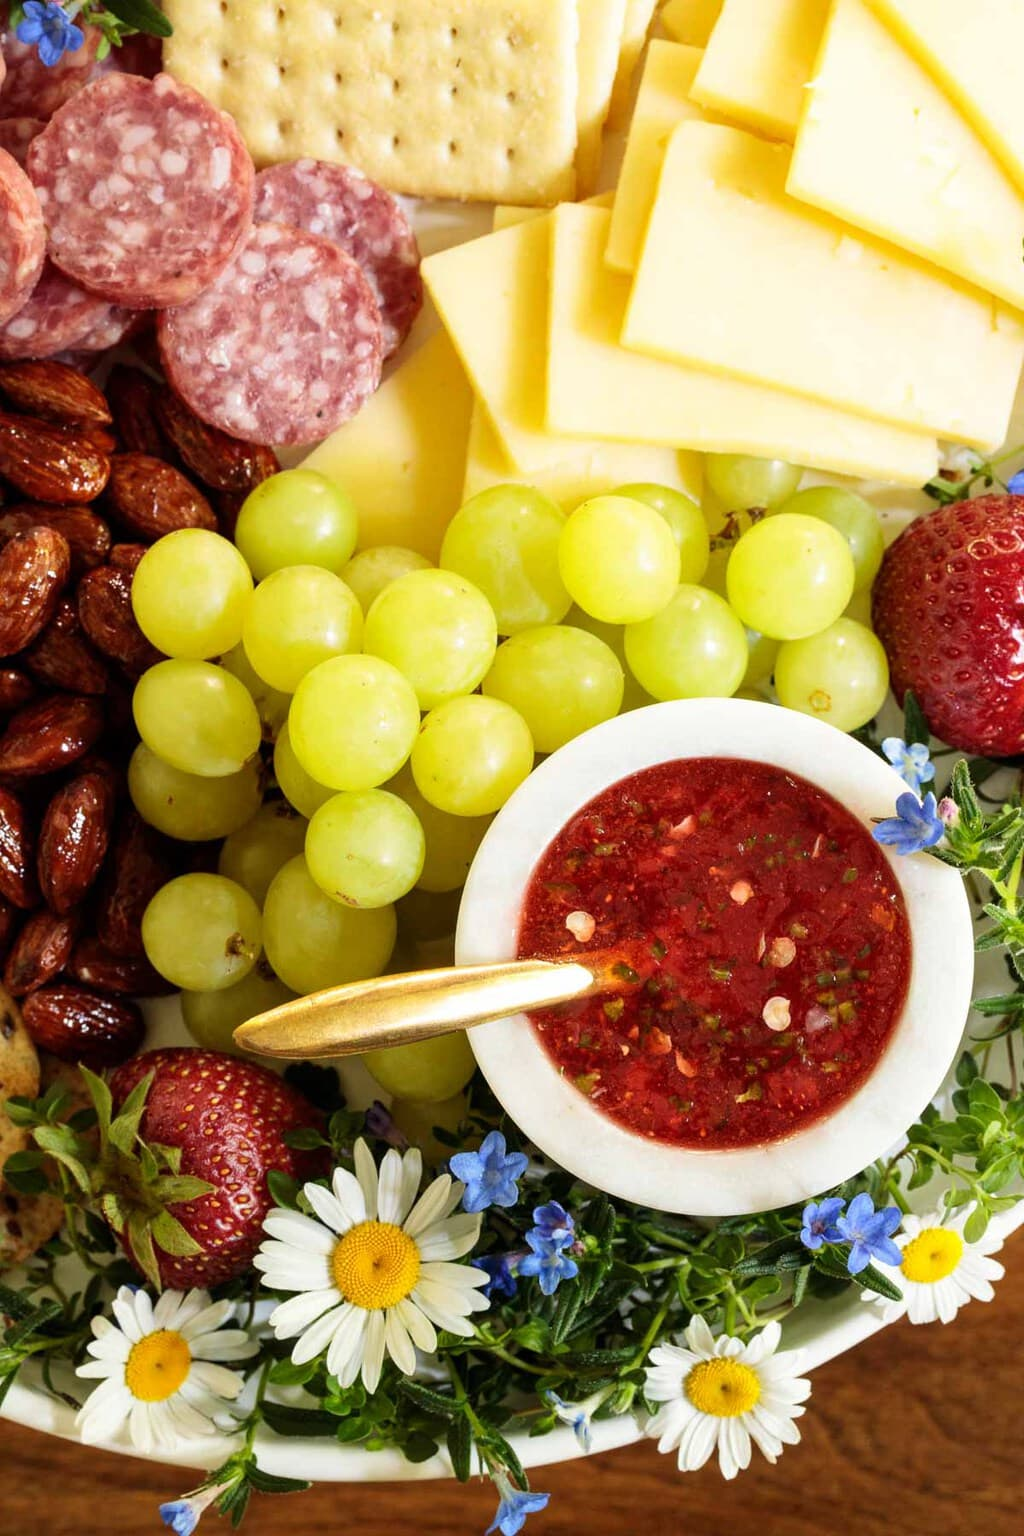 Overhead photo of an appetizer tray featuring Easy Strawberry Jalapeño Jam in a white dish surrounded by appetizer nibbles and decorative flowers.